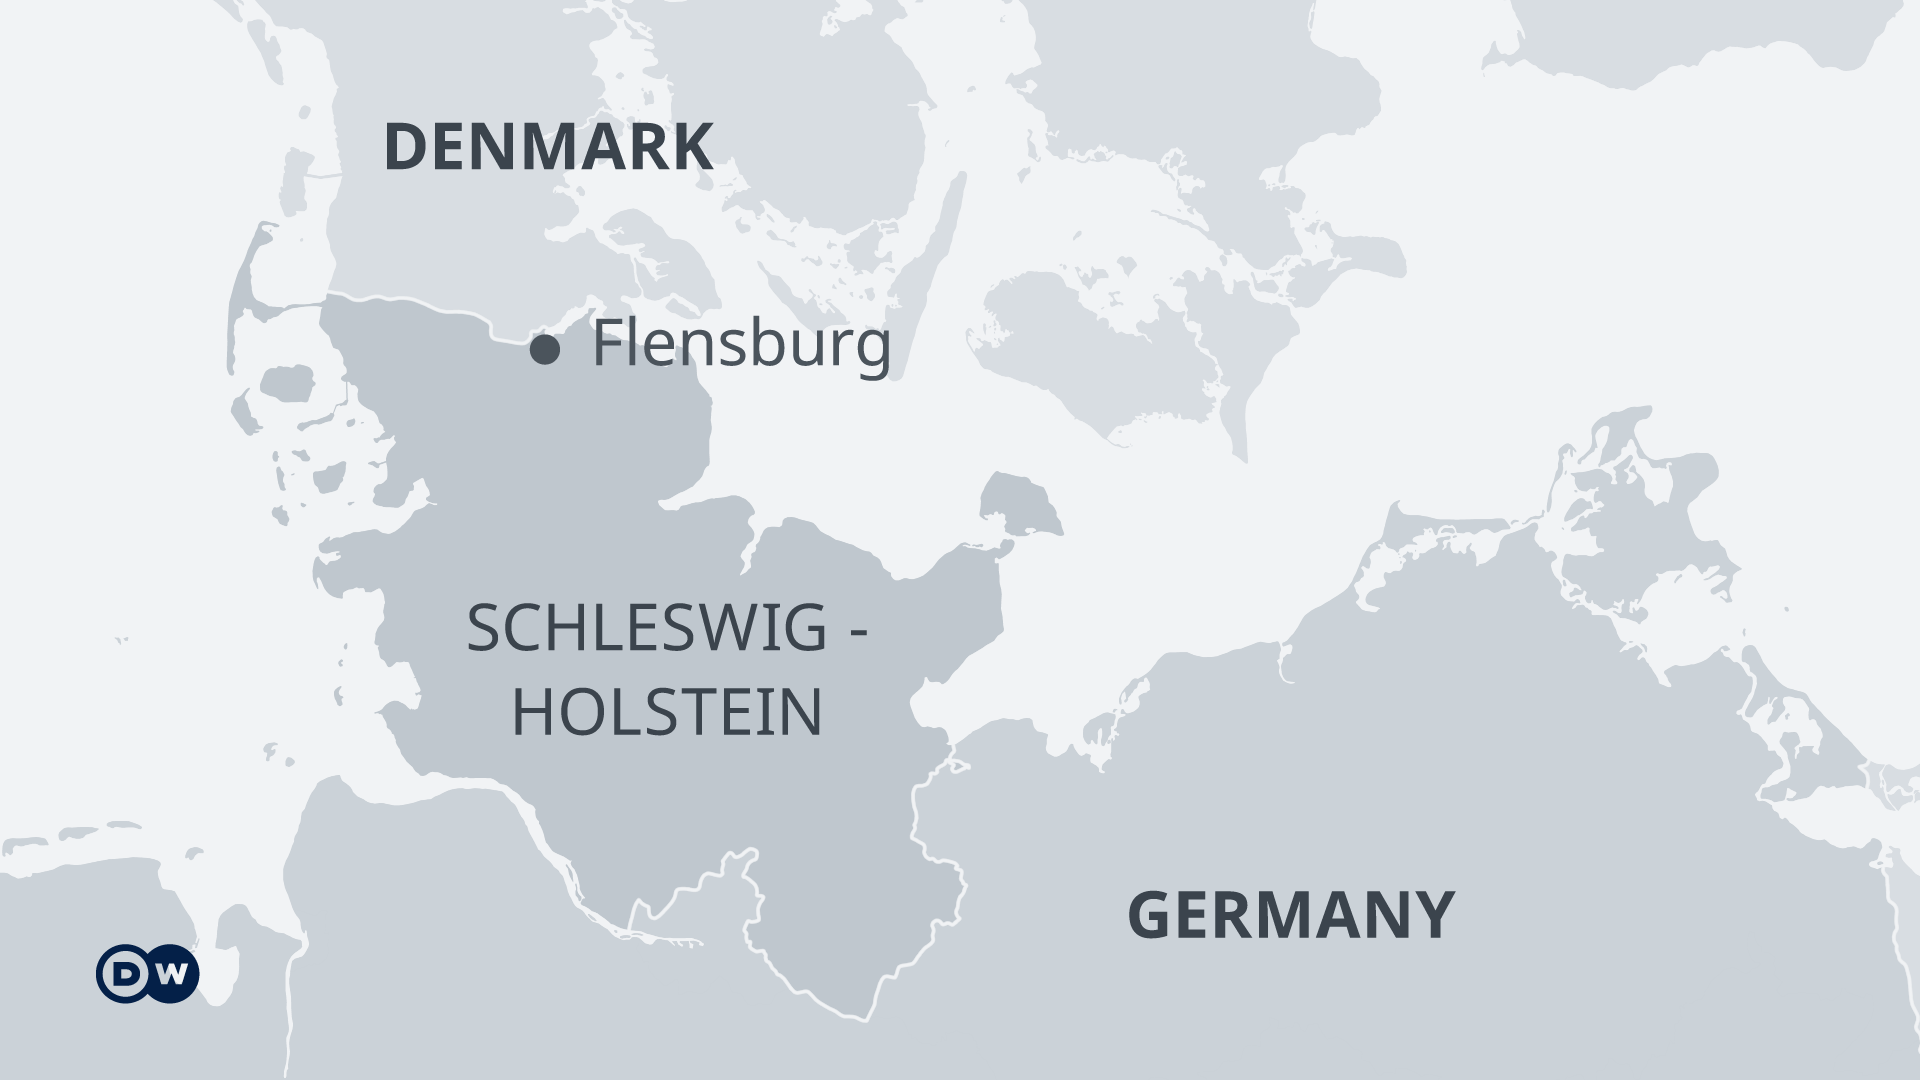 Infographic showing the location of Flensburg near the German-Danish border